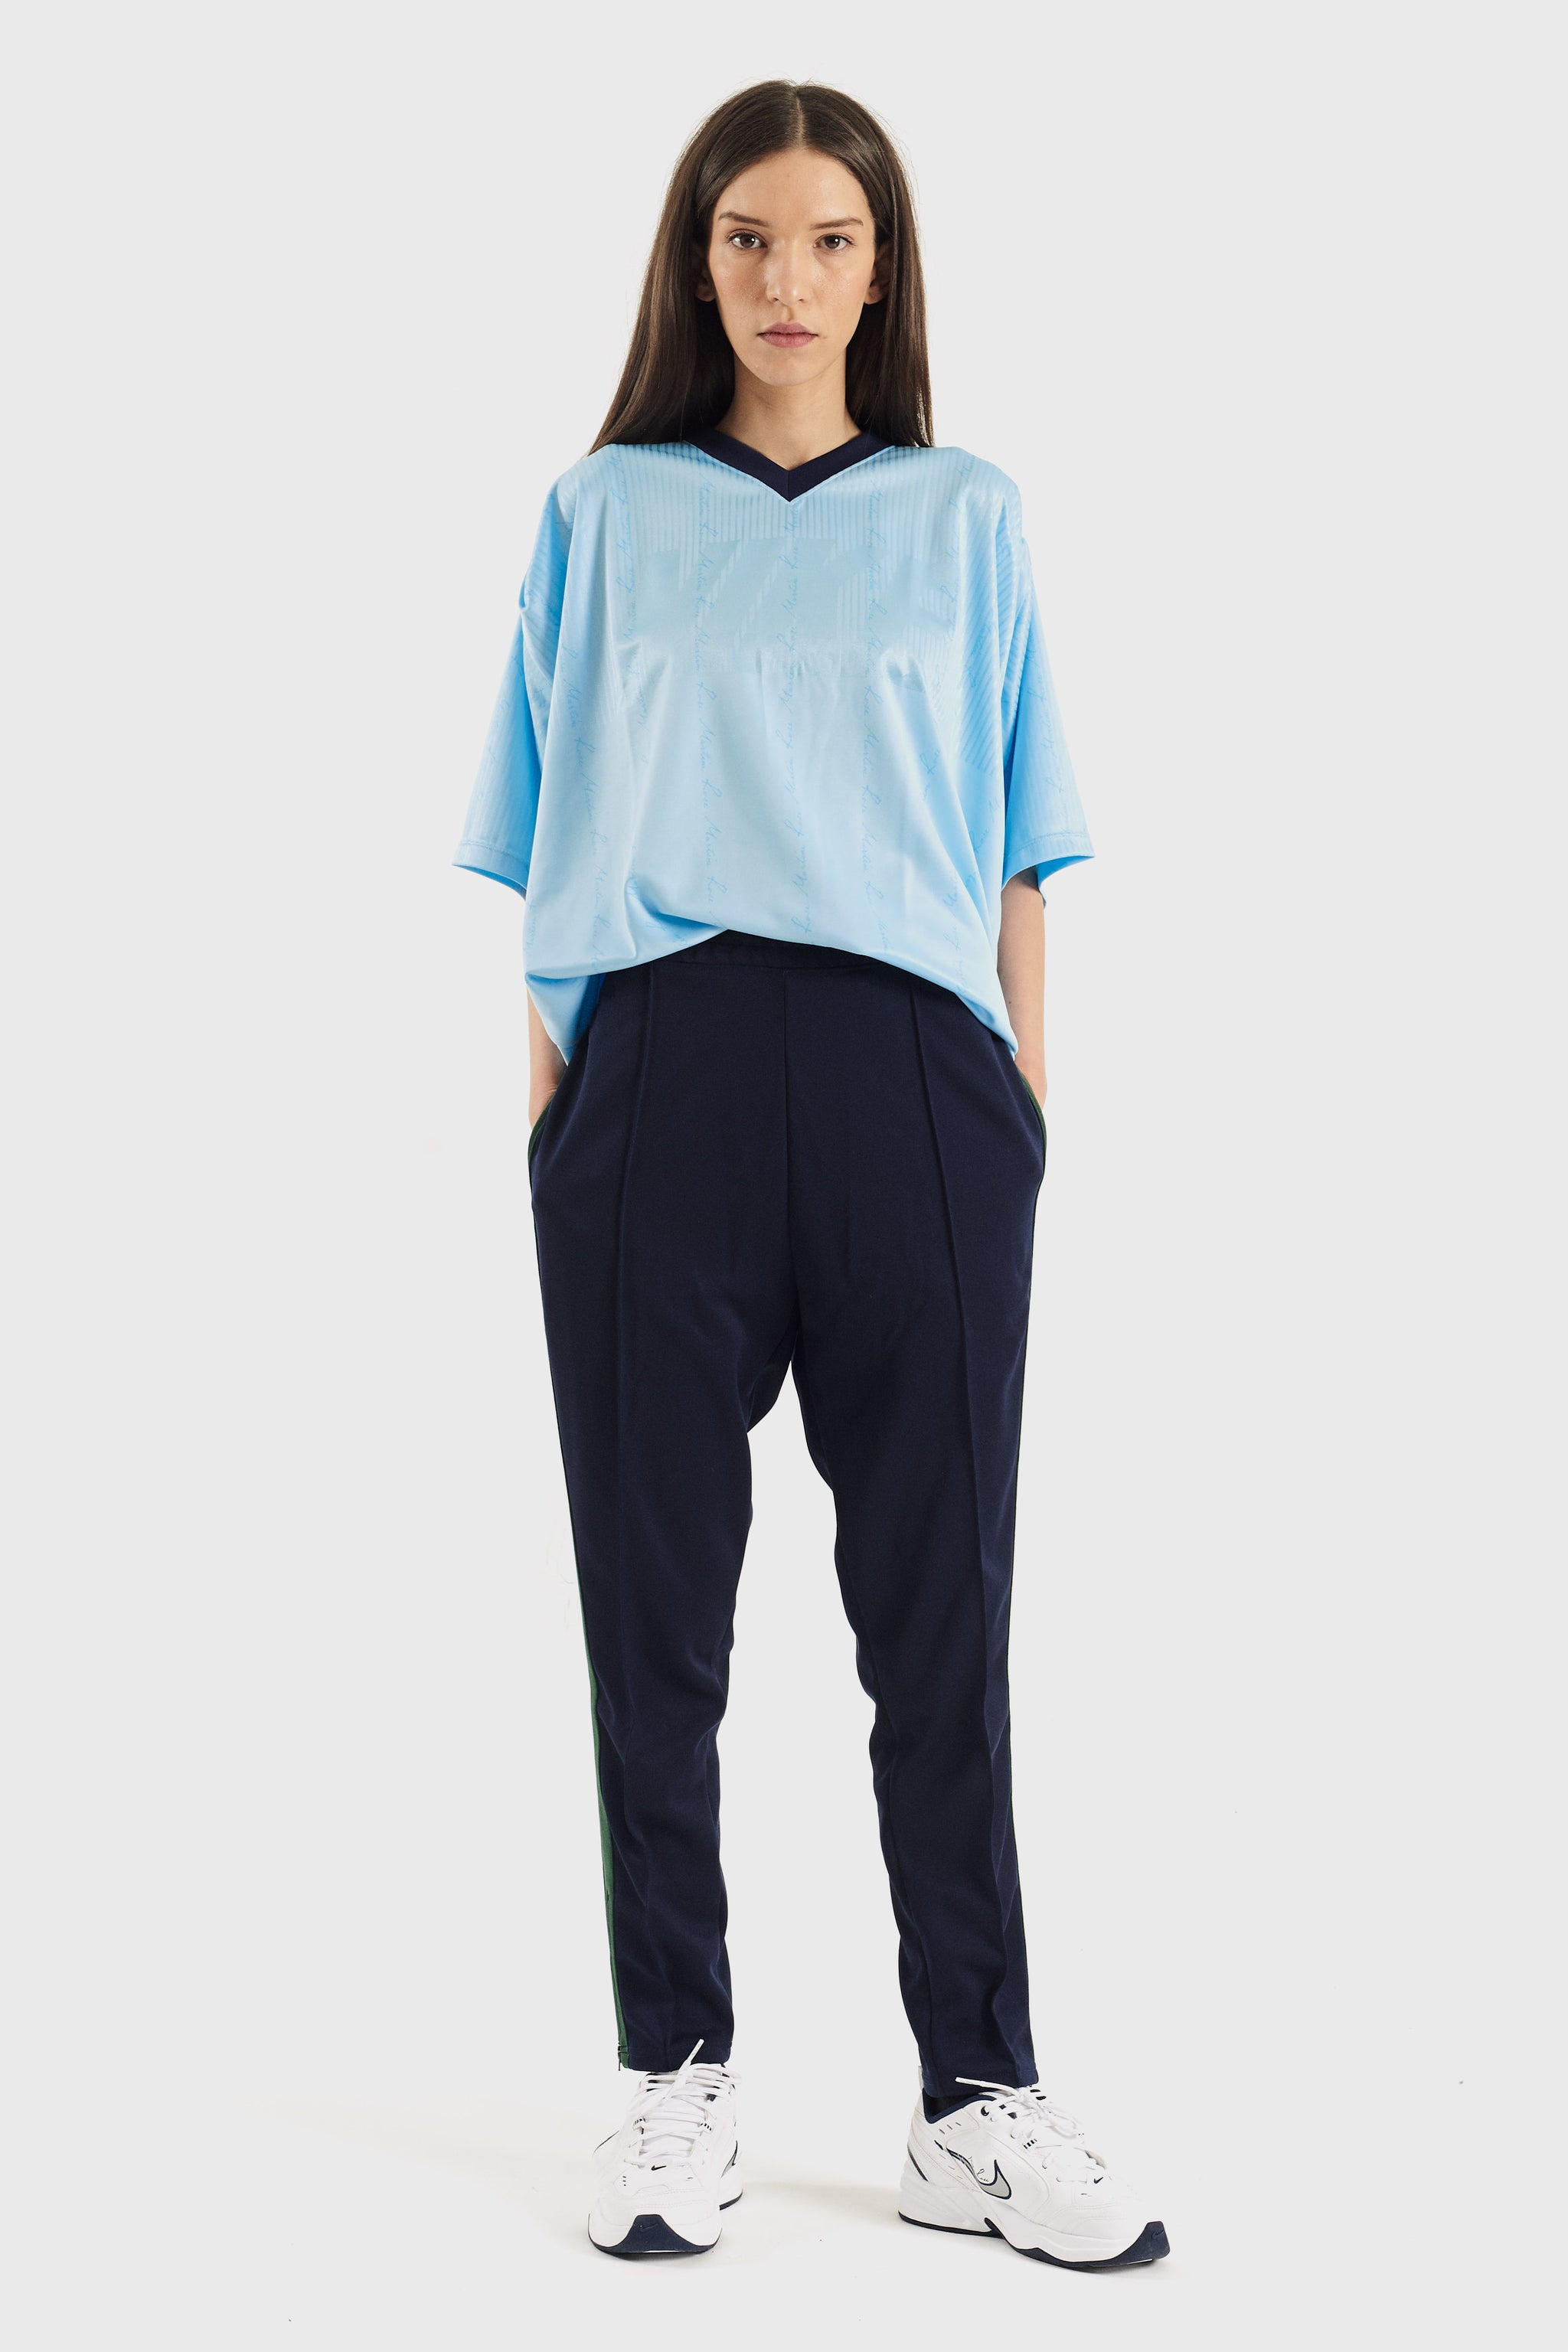 x Martine Rose pants